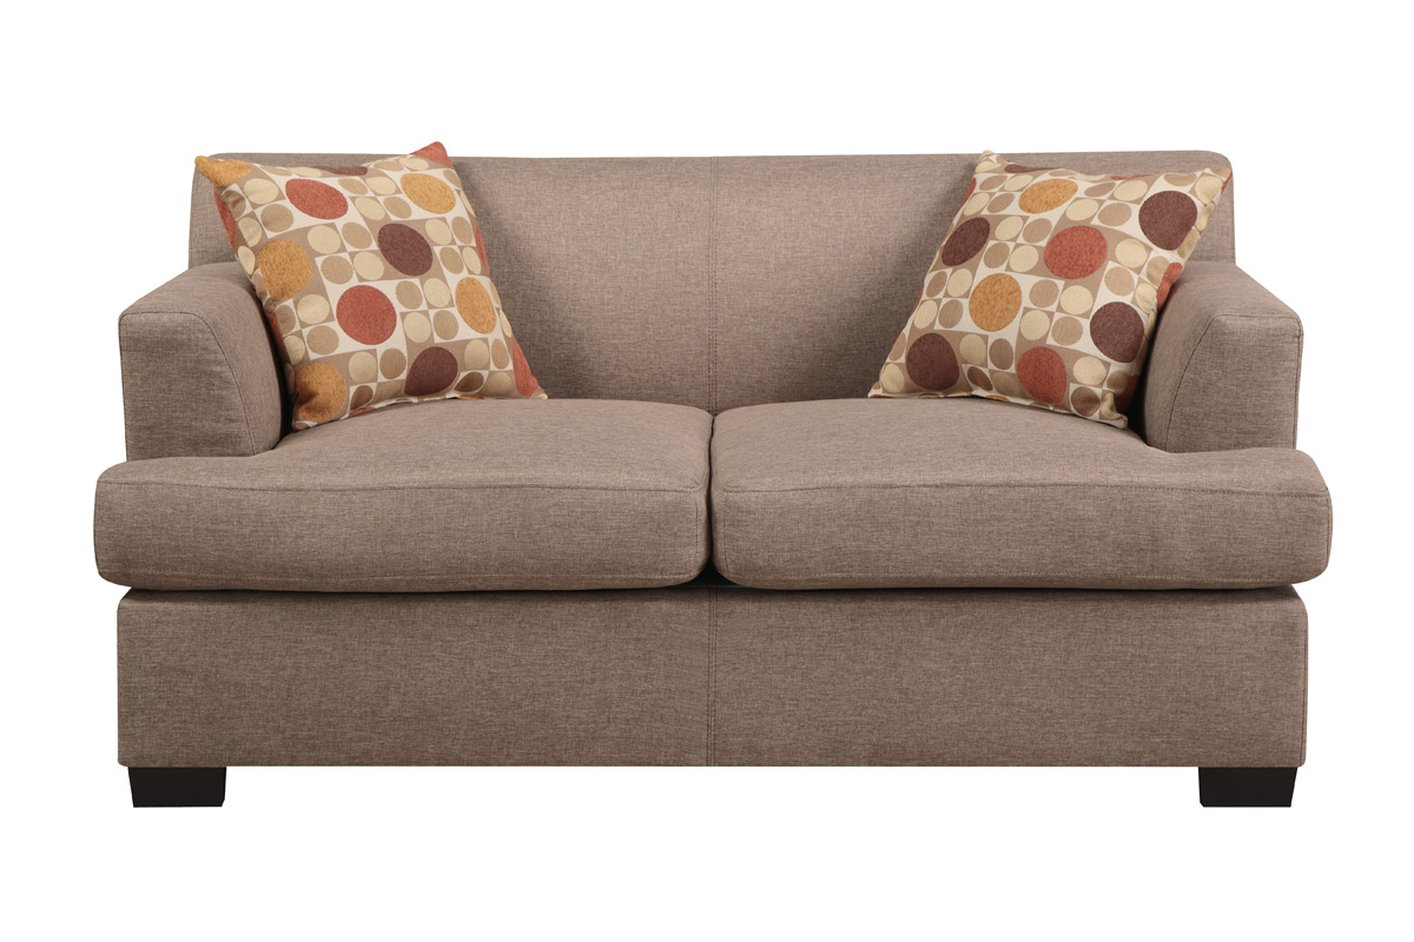 Poundex Montreal V F7967 Beige Fabric Loveseat Steal A Sofa Furniture Outlet Los Angeles Ca